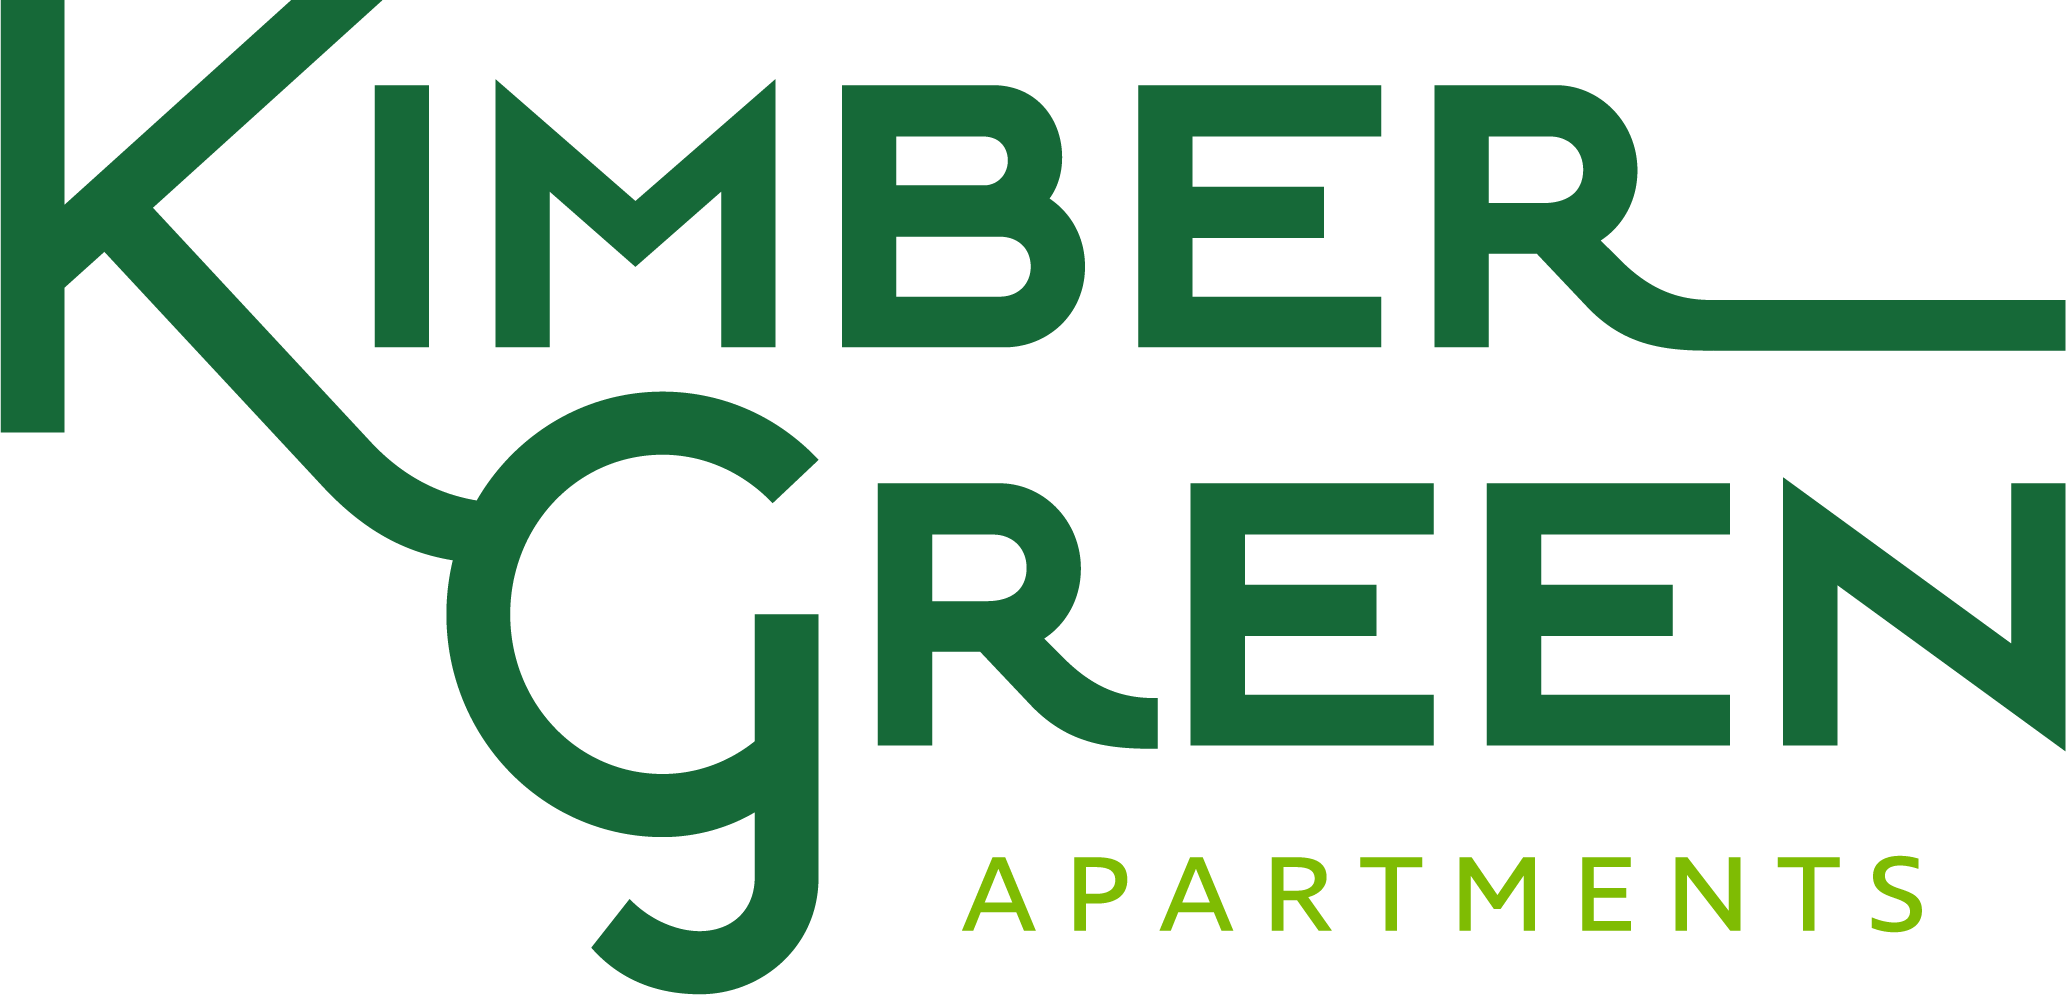 Regency - Kimber Green Apartments - Branding